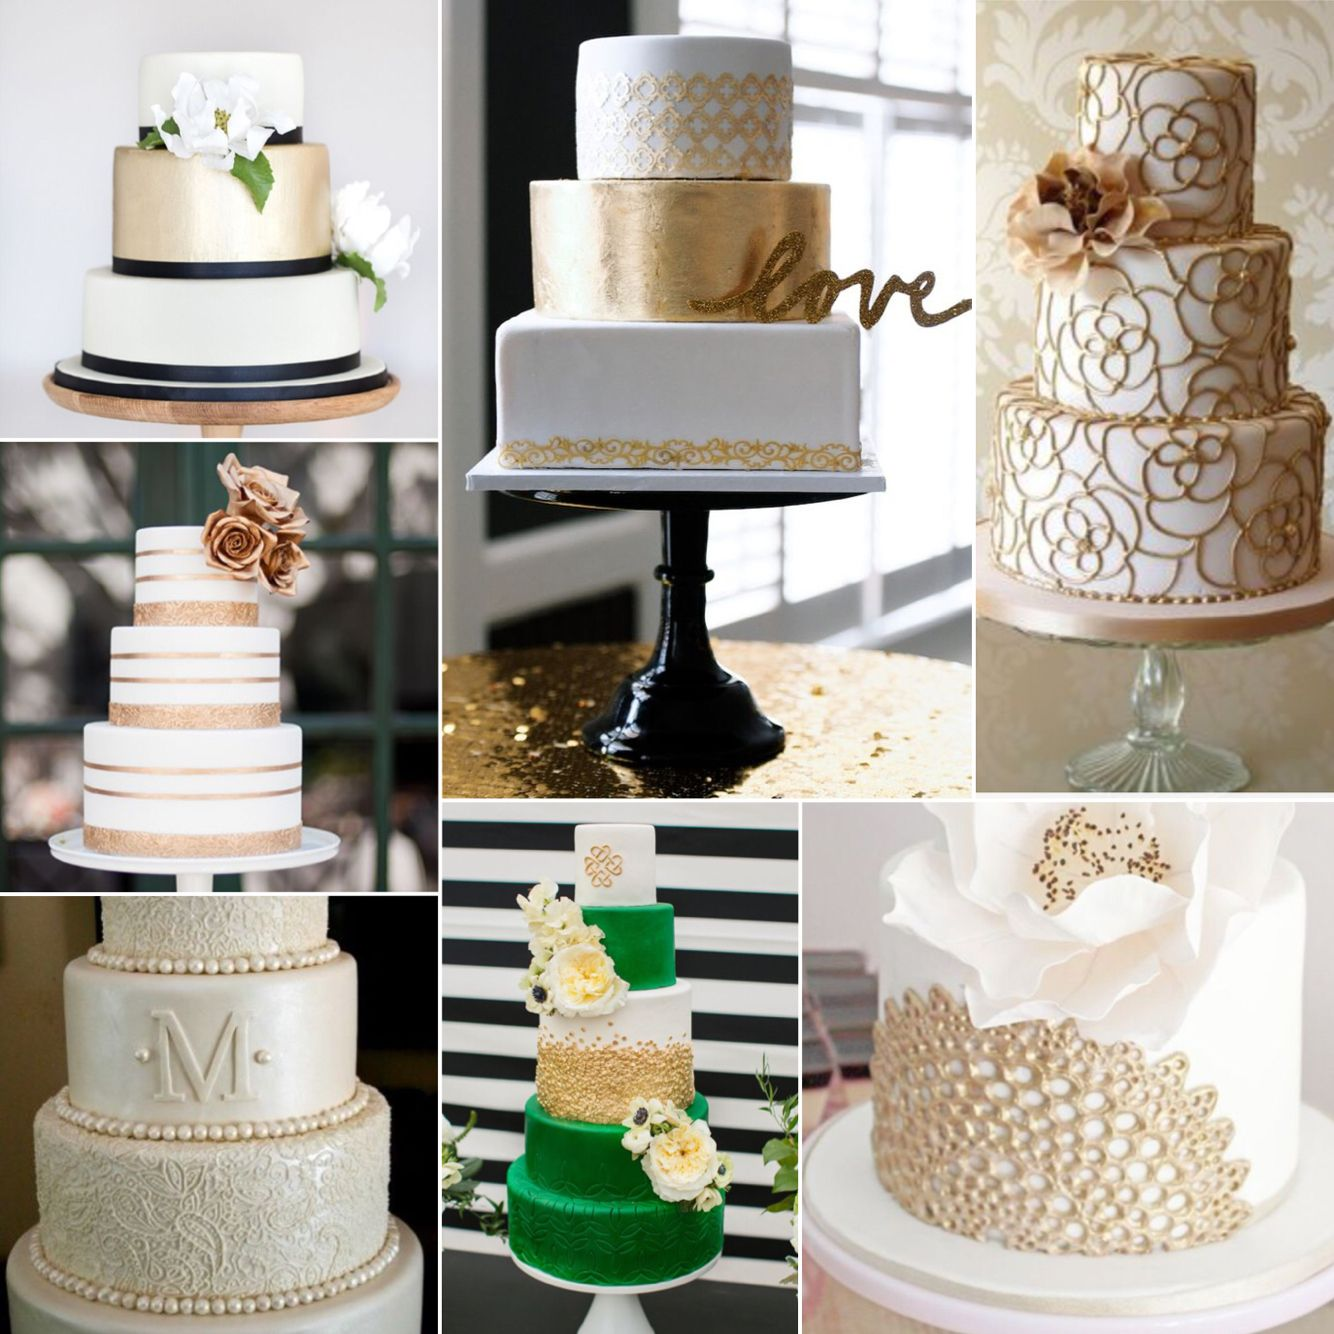 My favorite cakes! LOVE the gold!